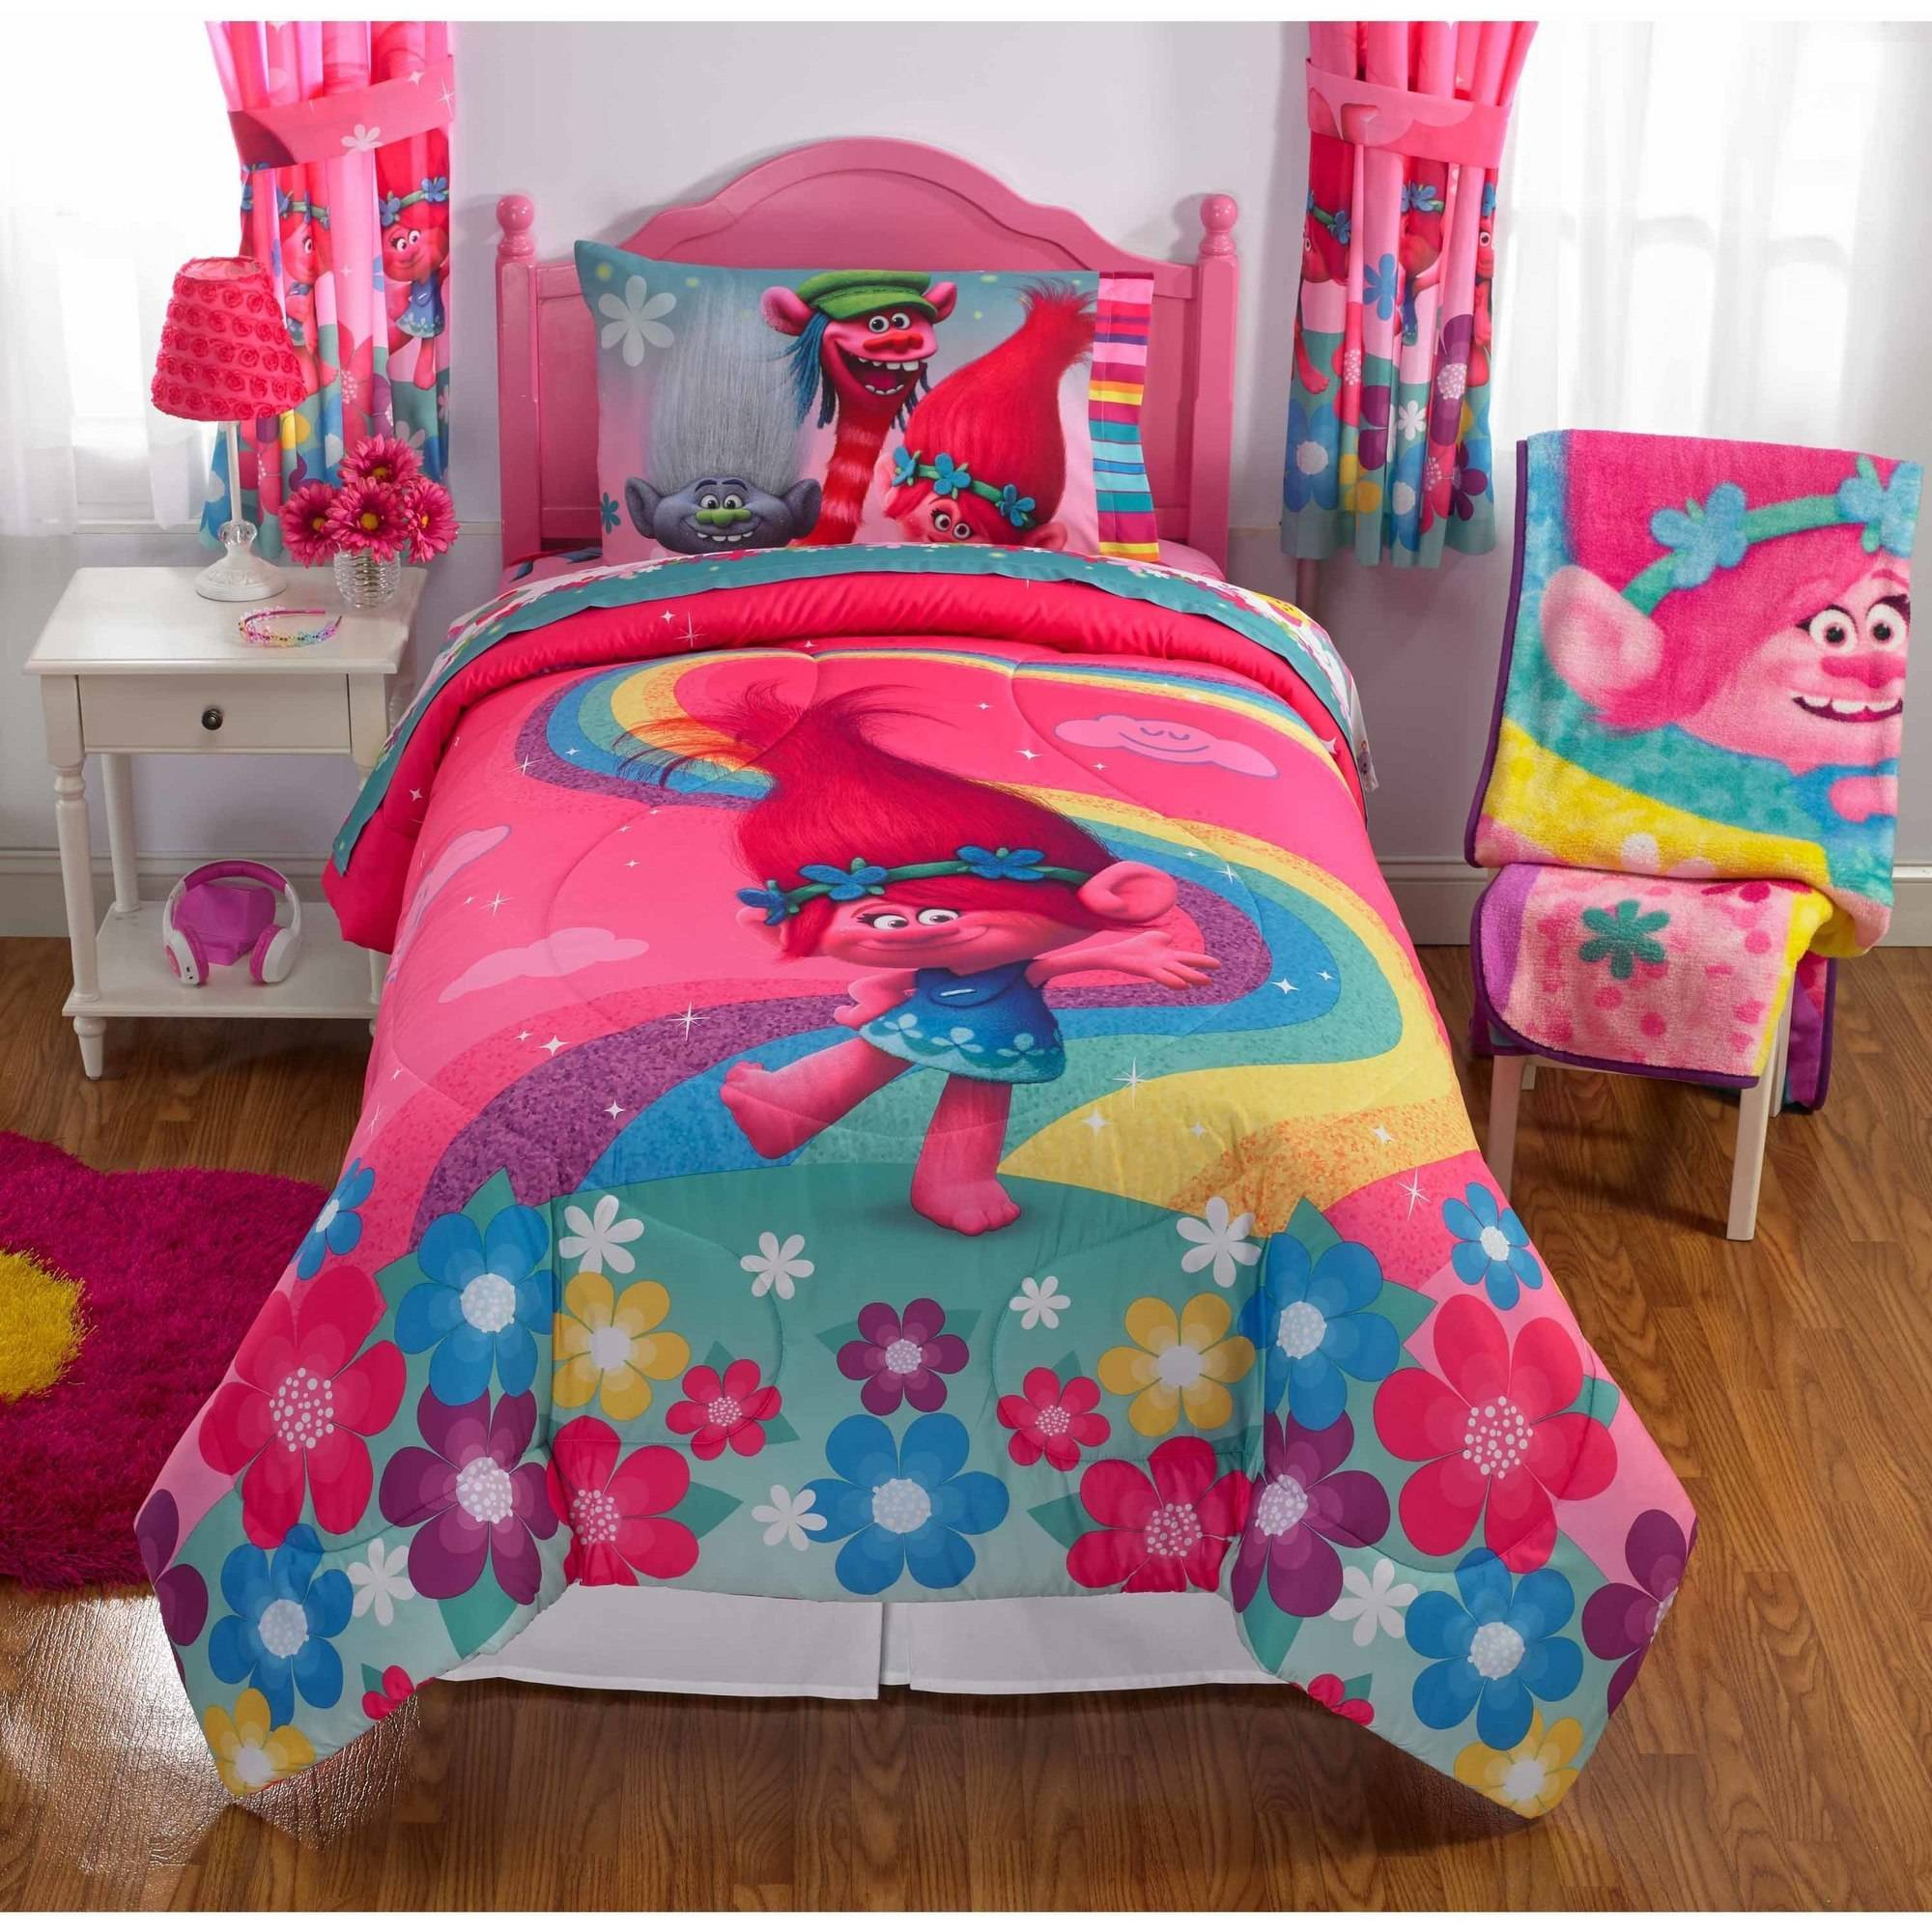 "Trolls ""Show Me A Smile"" Kid's Bedding Bed in Bag Bedding Set"